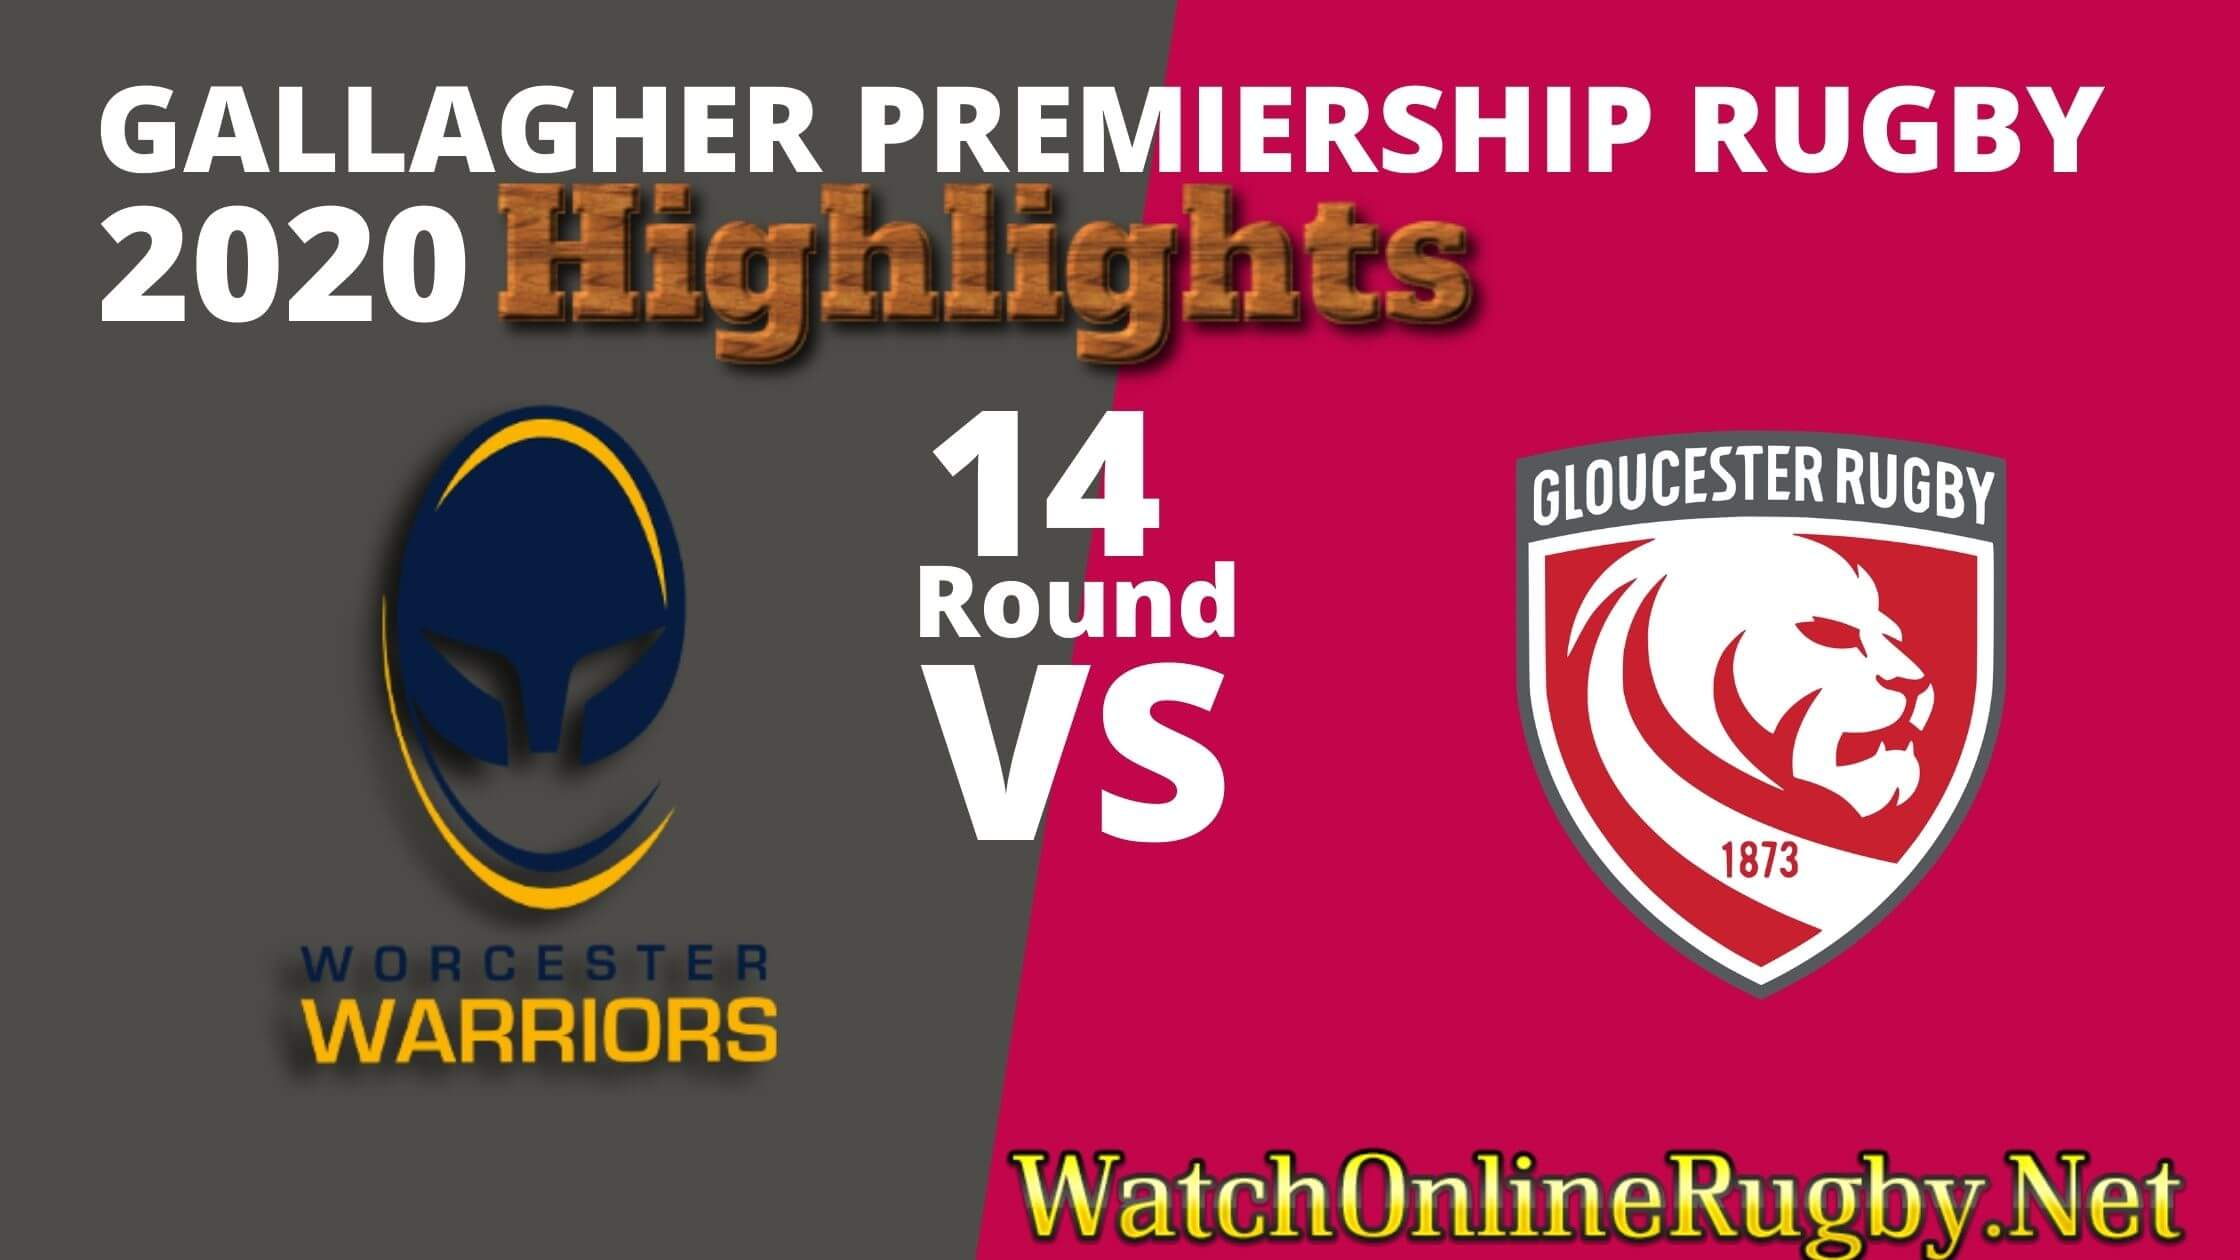 Worcester Warrior Vs Gloucester Rugby Highlights 2020 Rd 14 Premiership Rugby